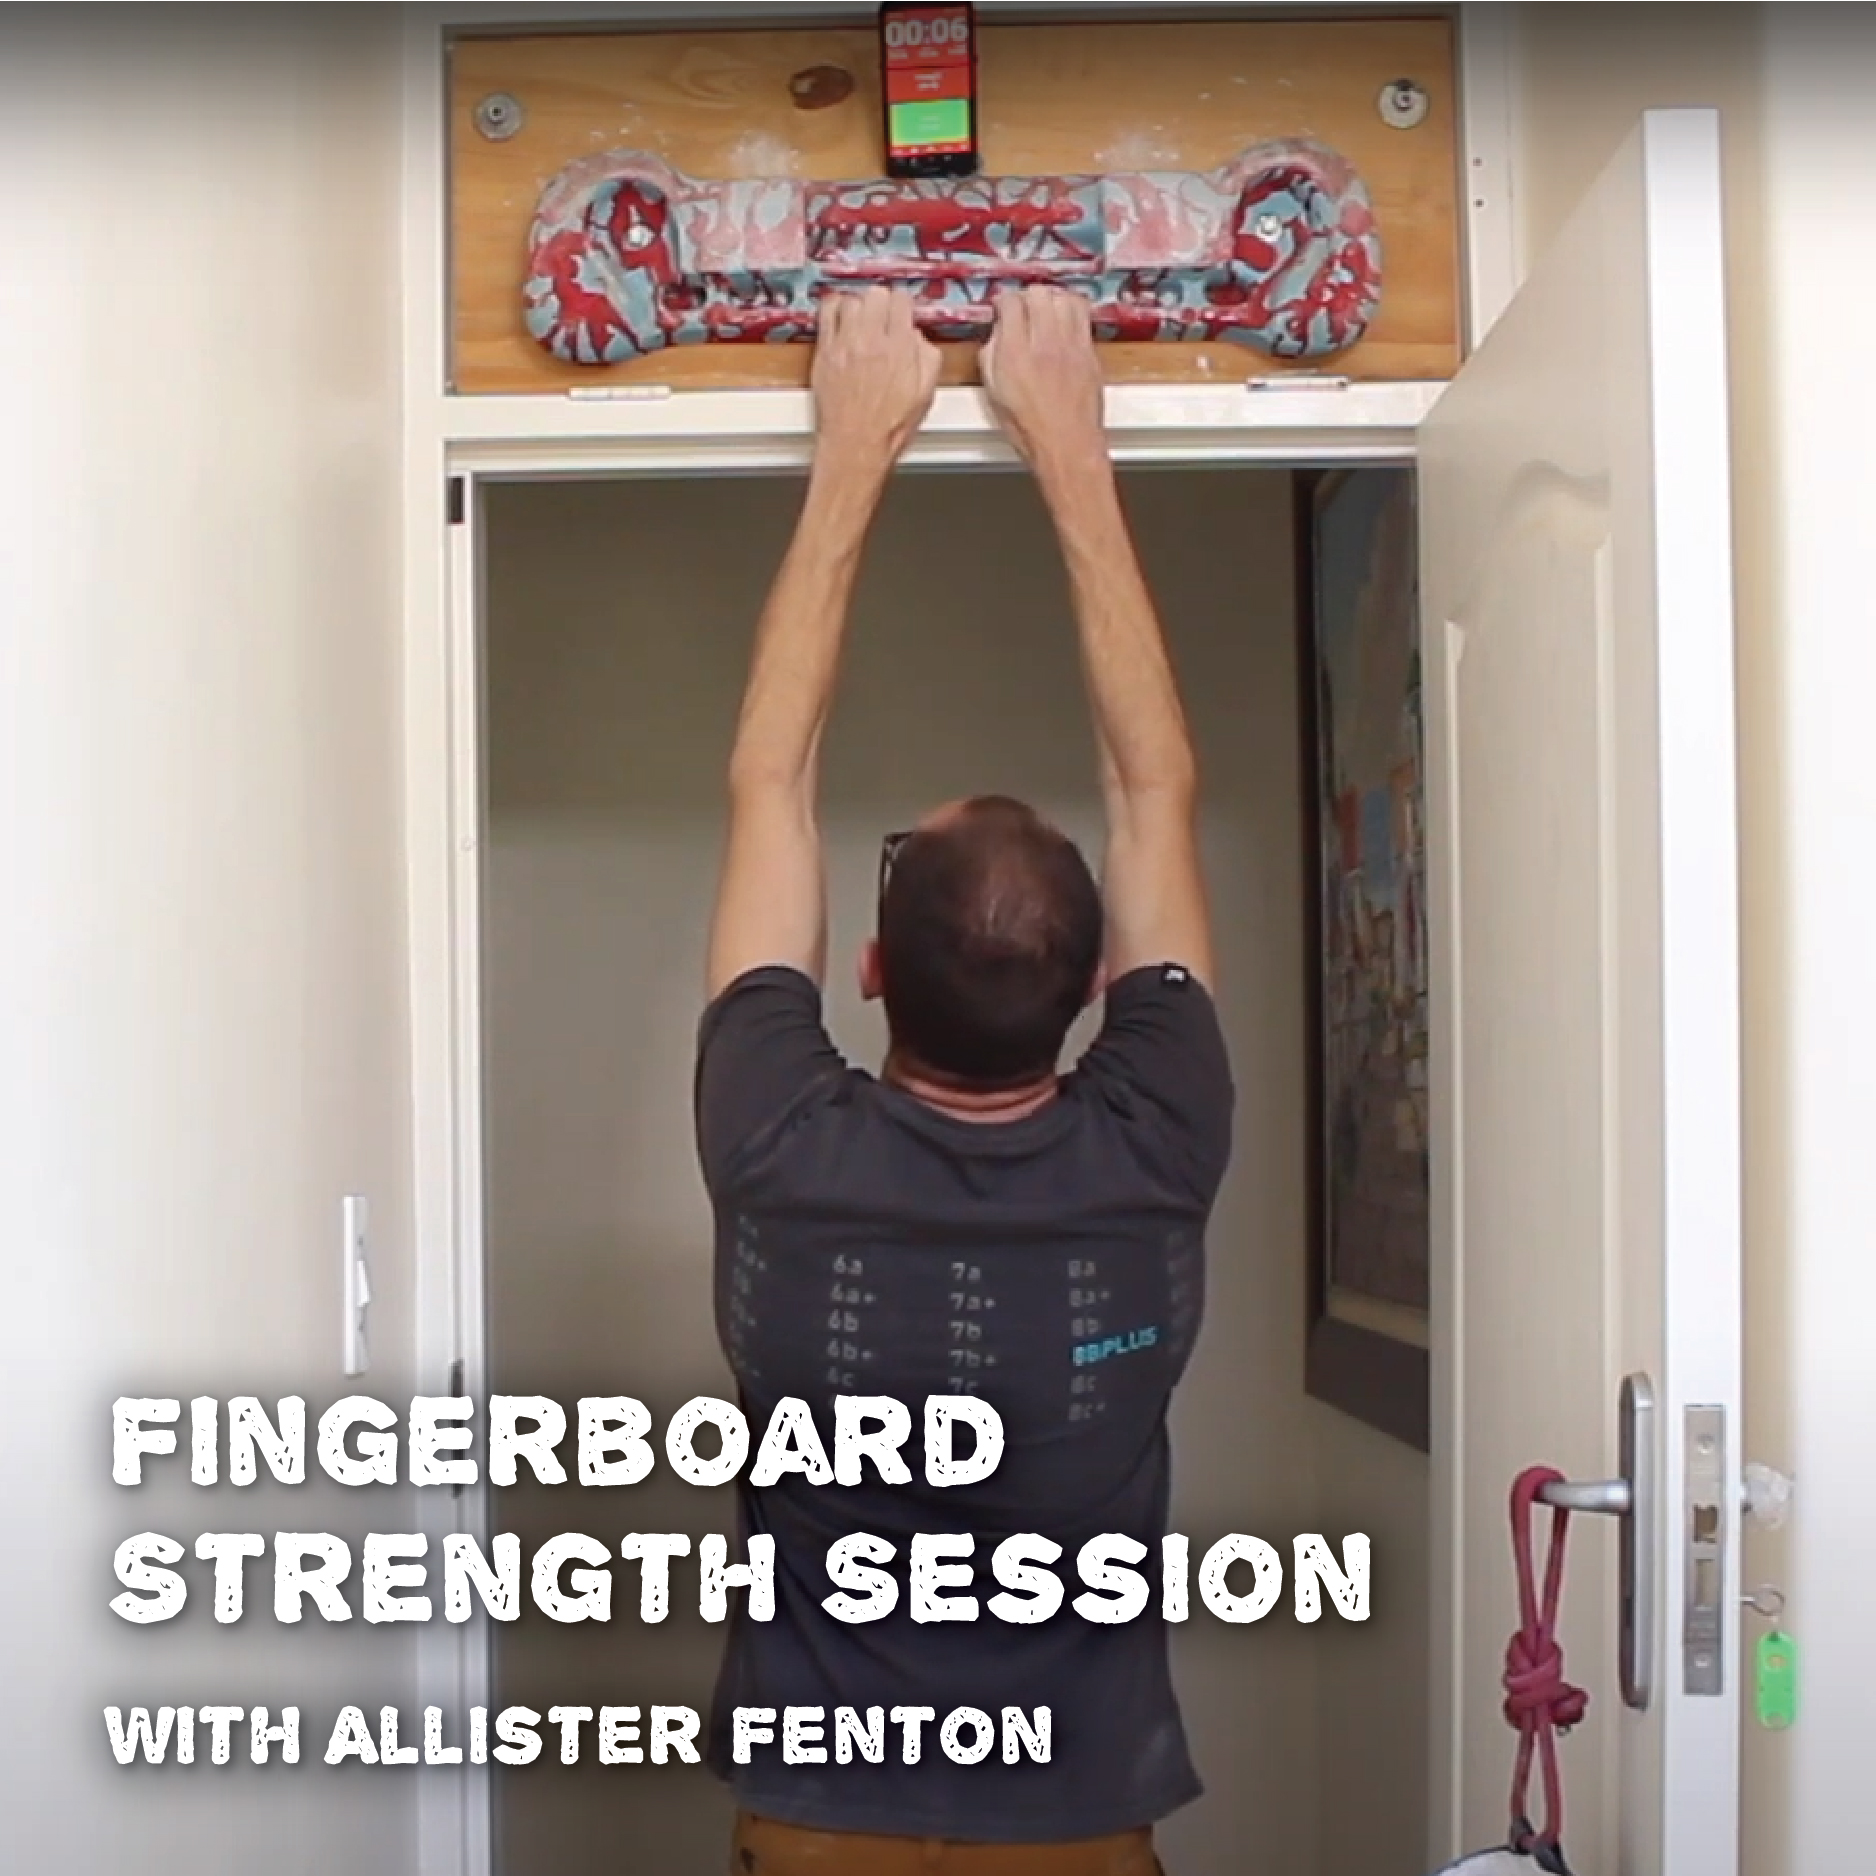 Fingerboard Strength Session